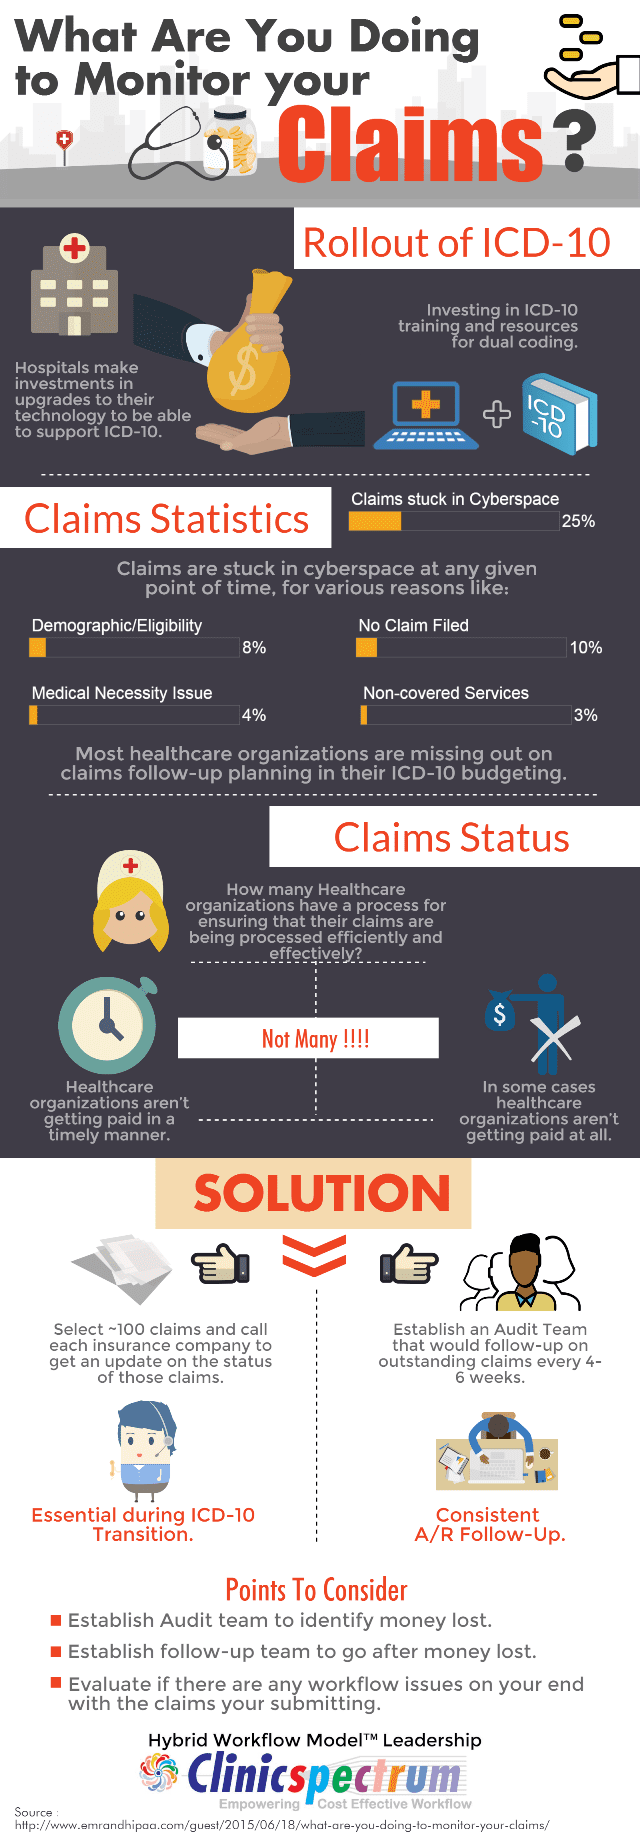 What Are You Doing to Monitor Your Claims